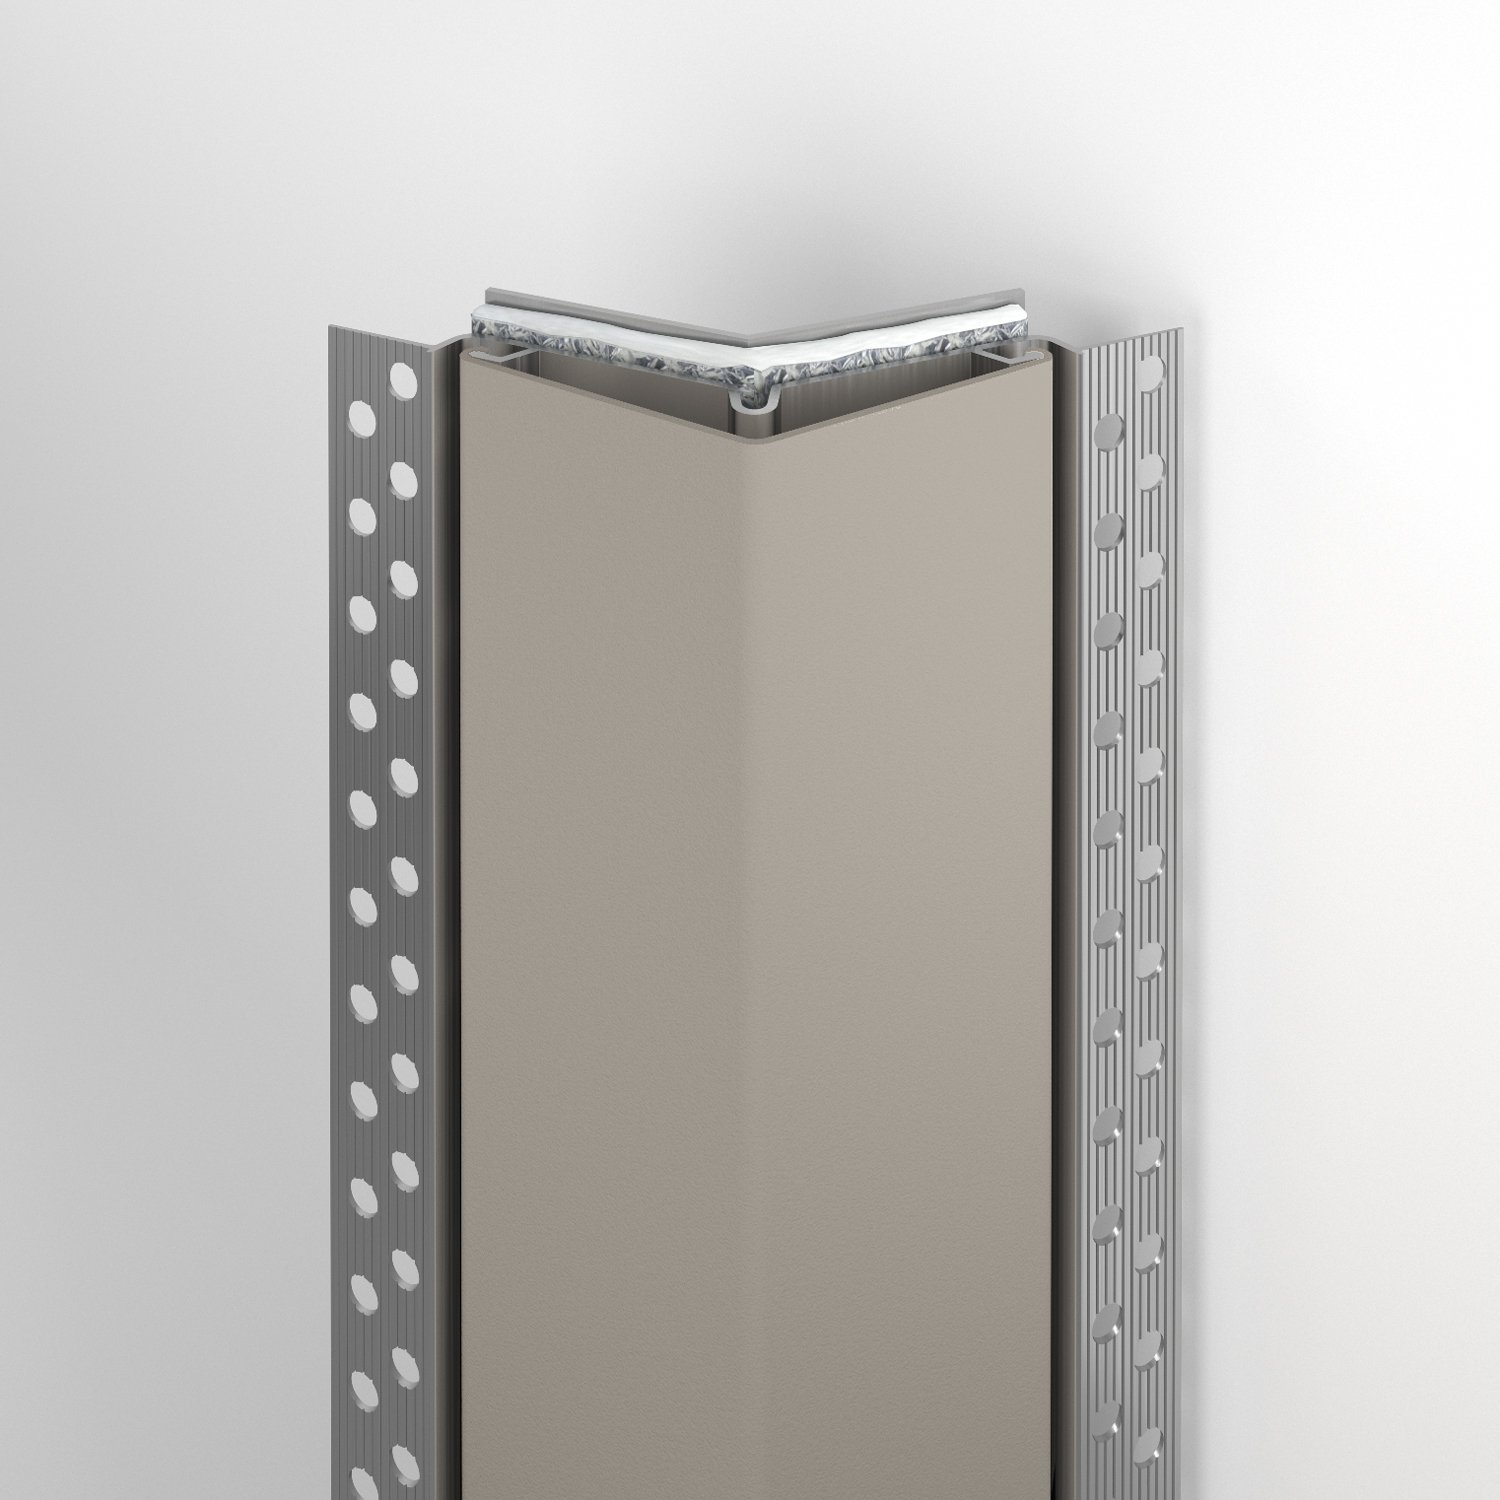 130FR fire rated corner guard in shiprock gray